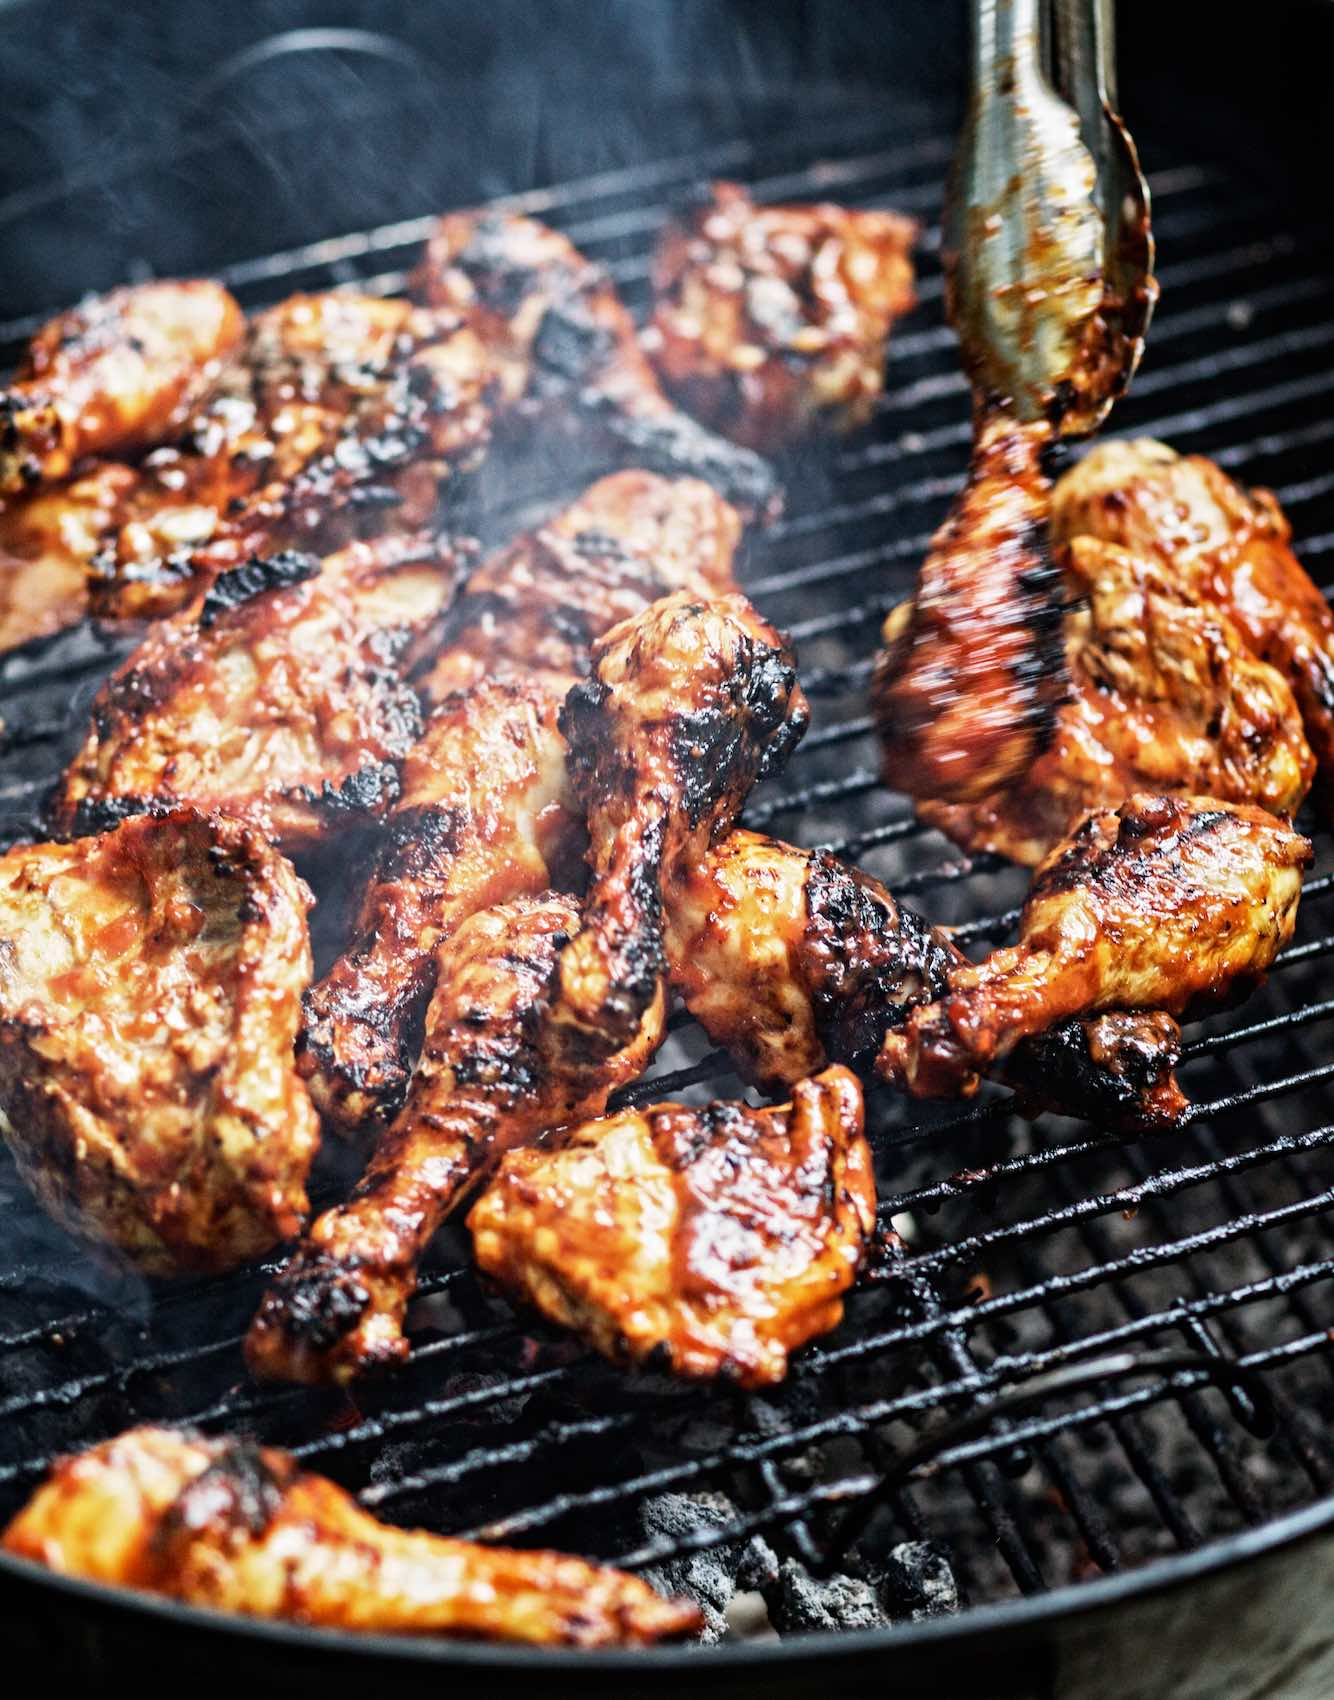 Jody Horton Photography - Chicken wings cooking on grill.